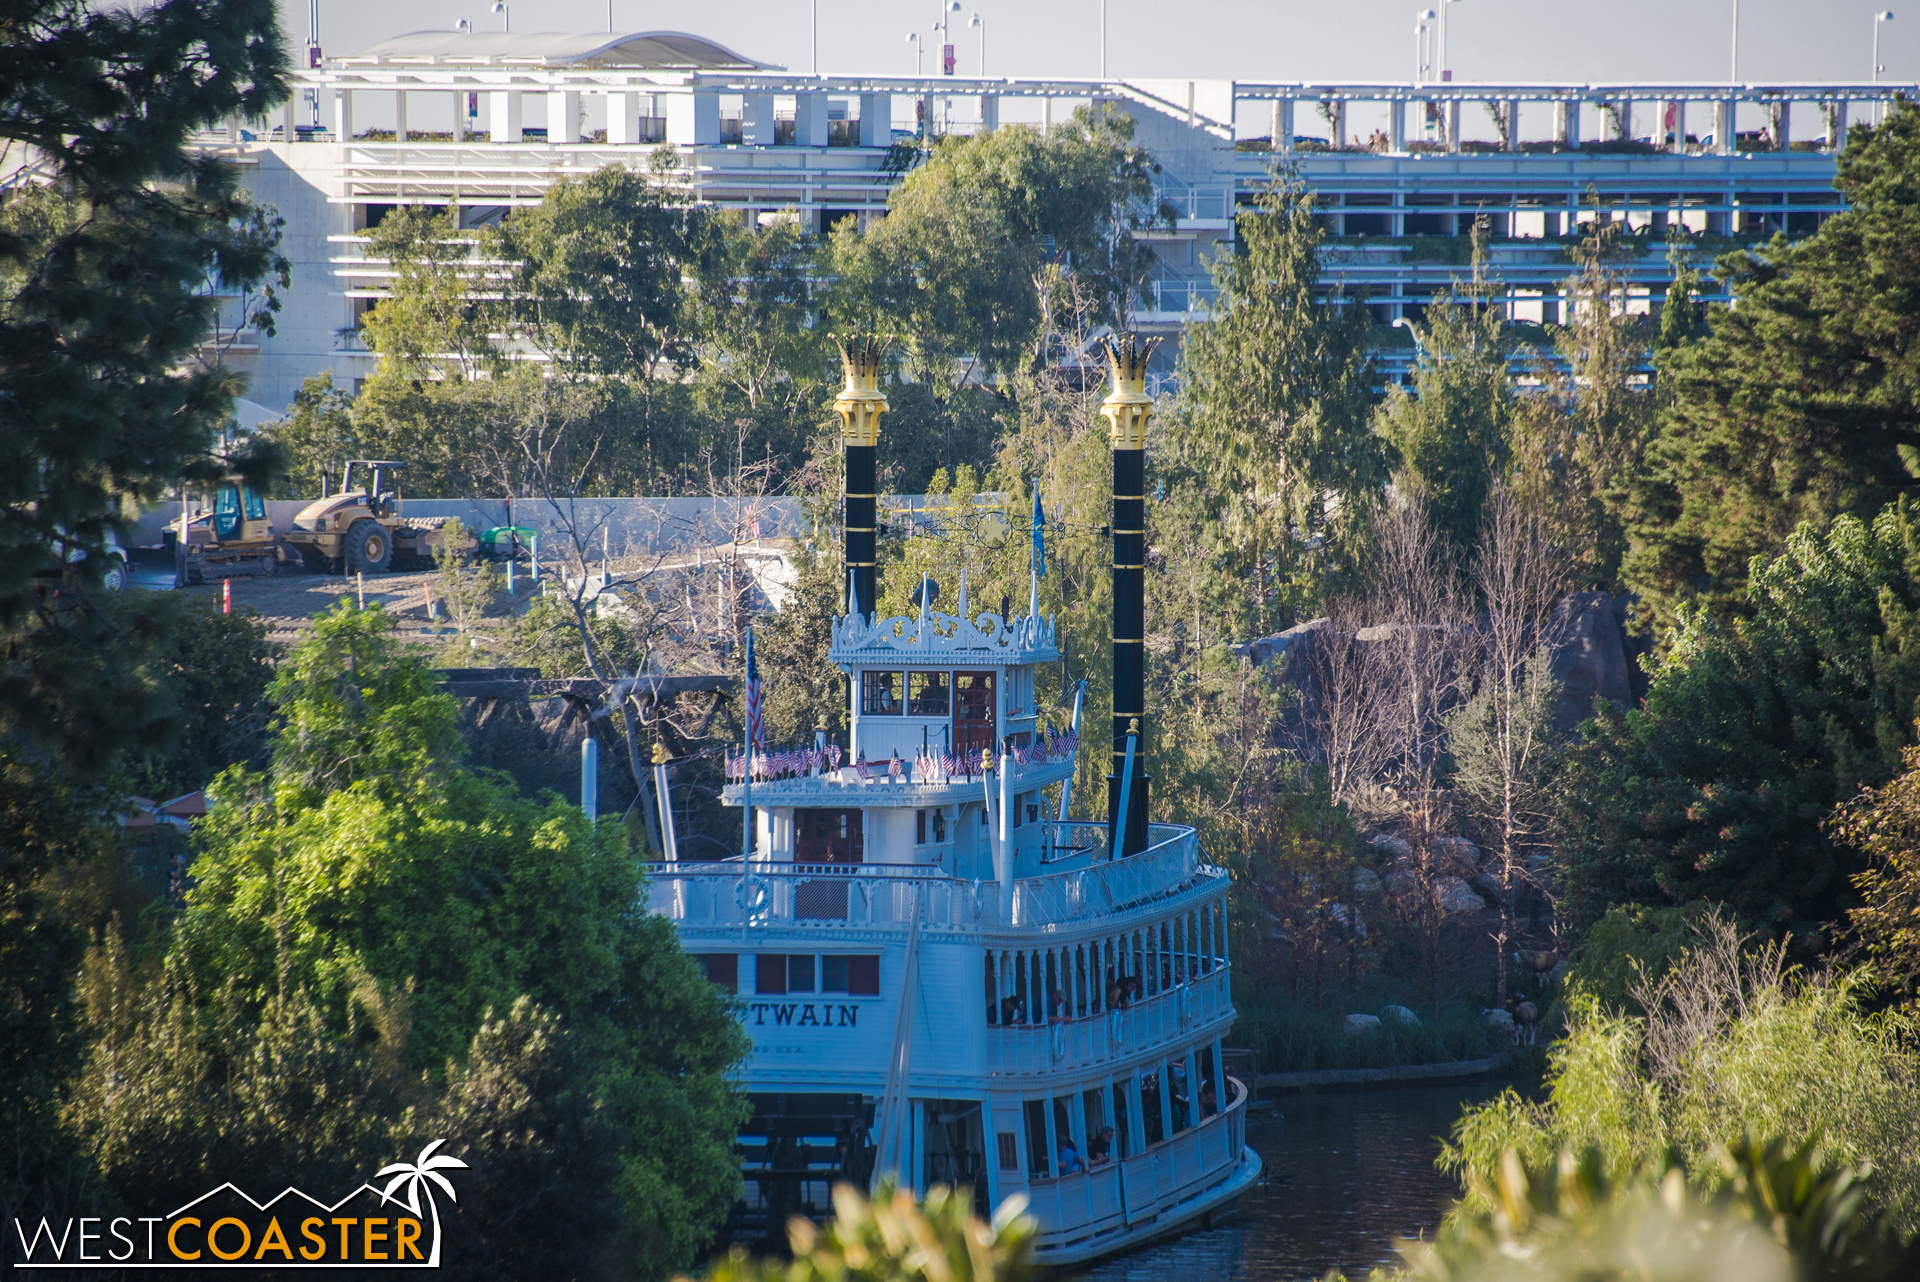 Over to the Critter Country side, you can see the dirt filling up against the retaining wall from a few photos ago.